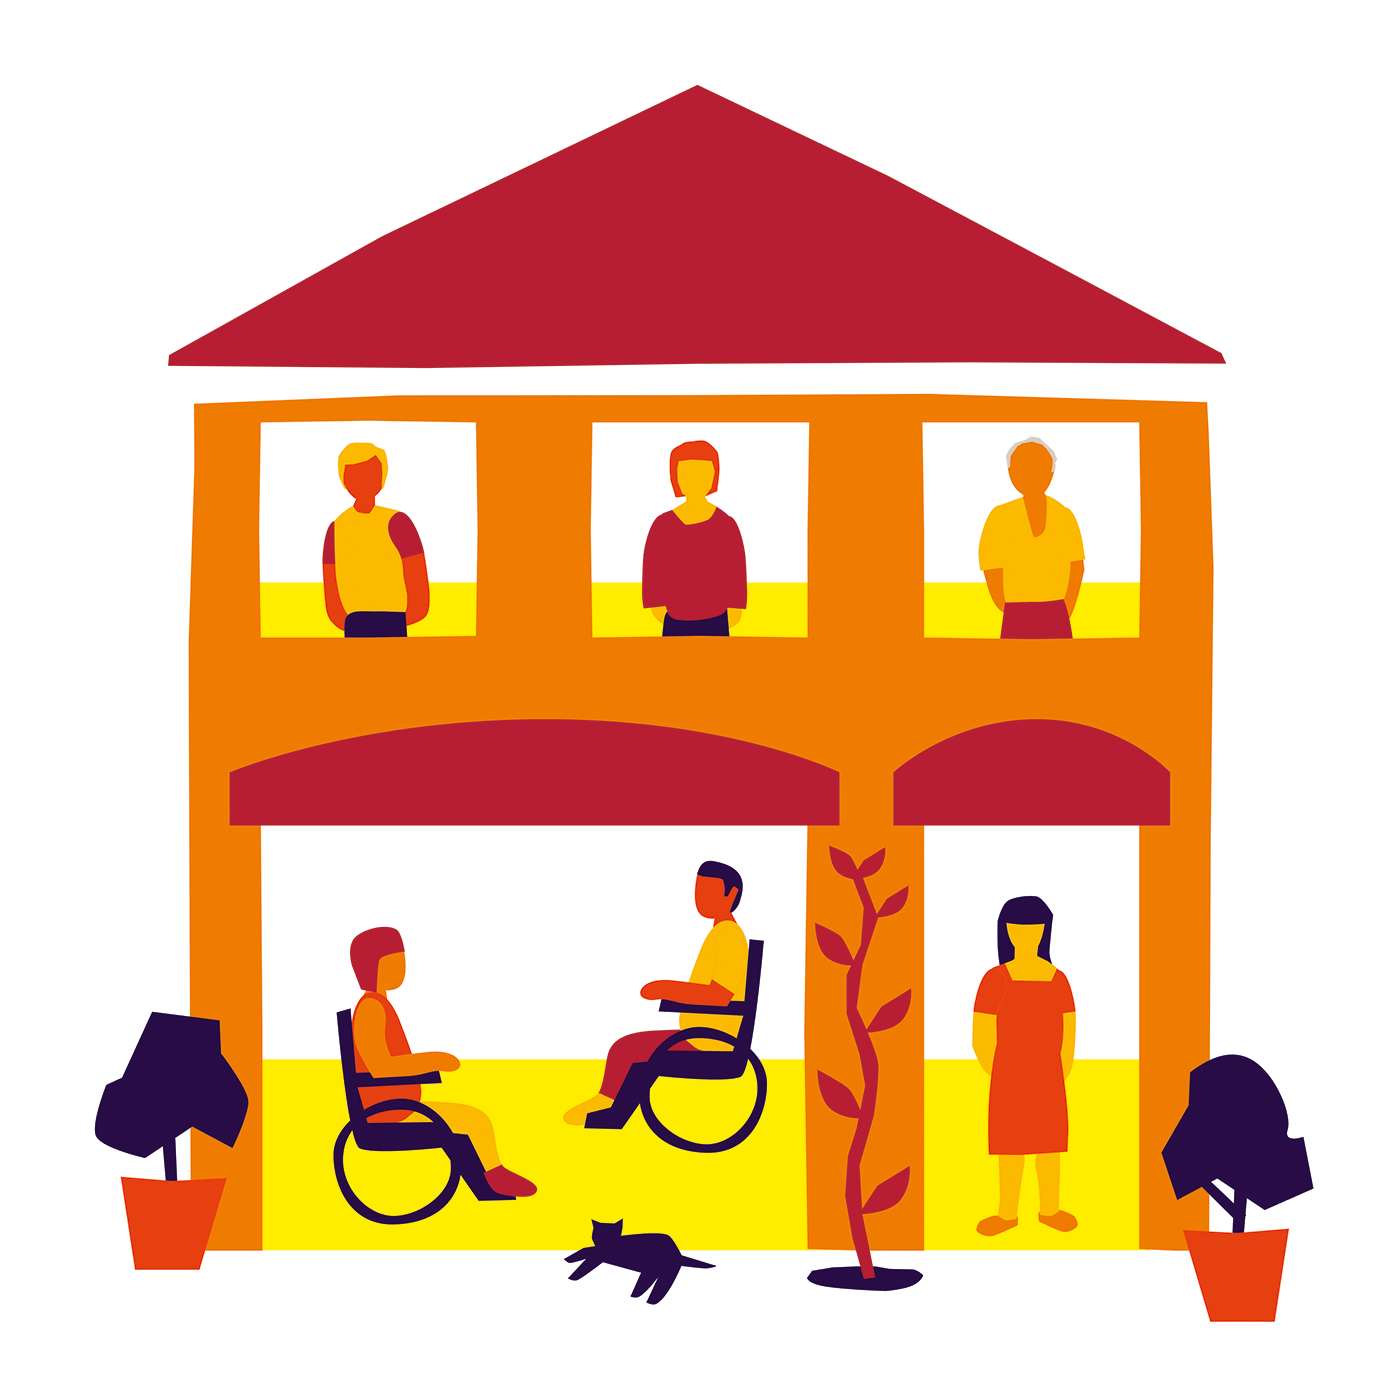 Housing support illustration for Leonard Cheshire